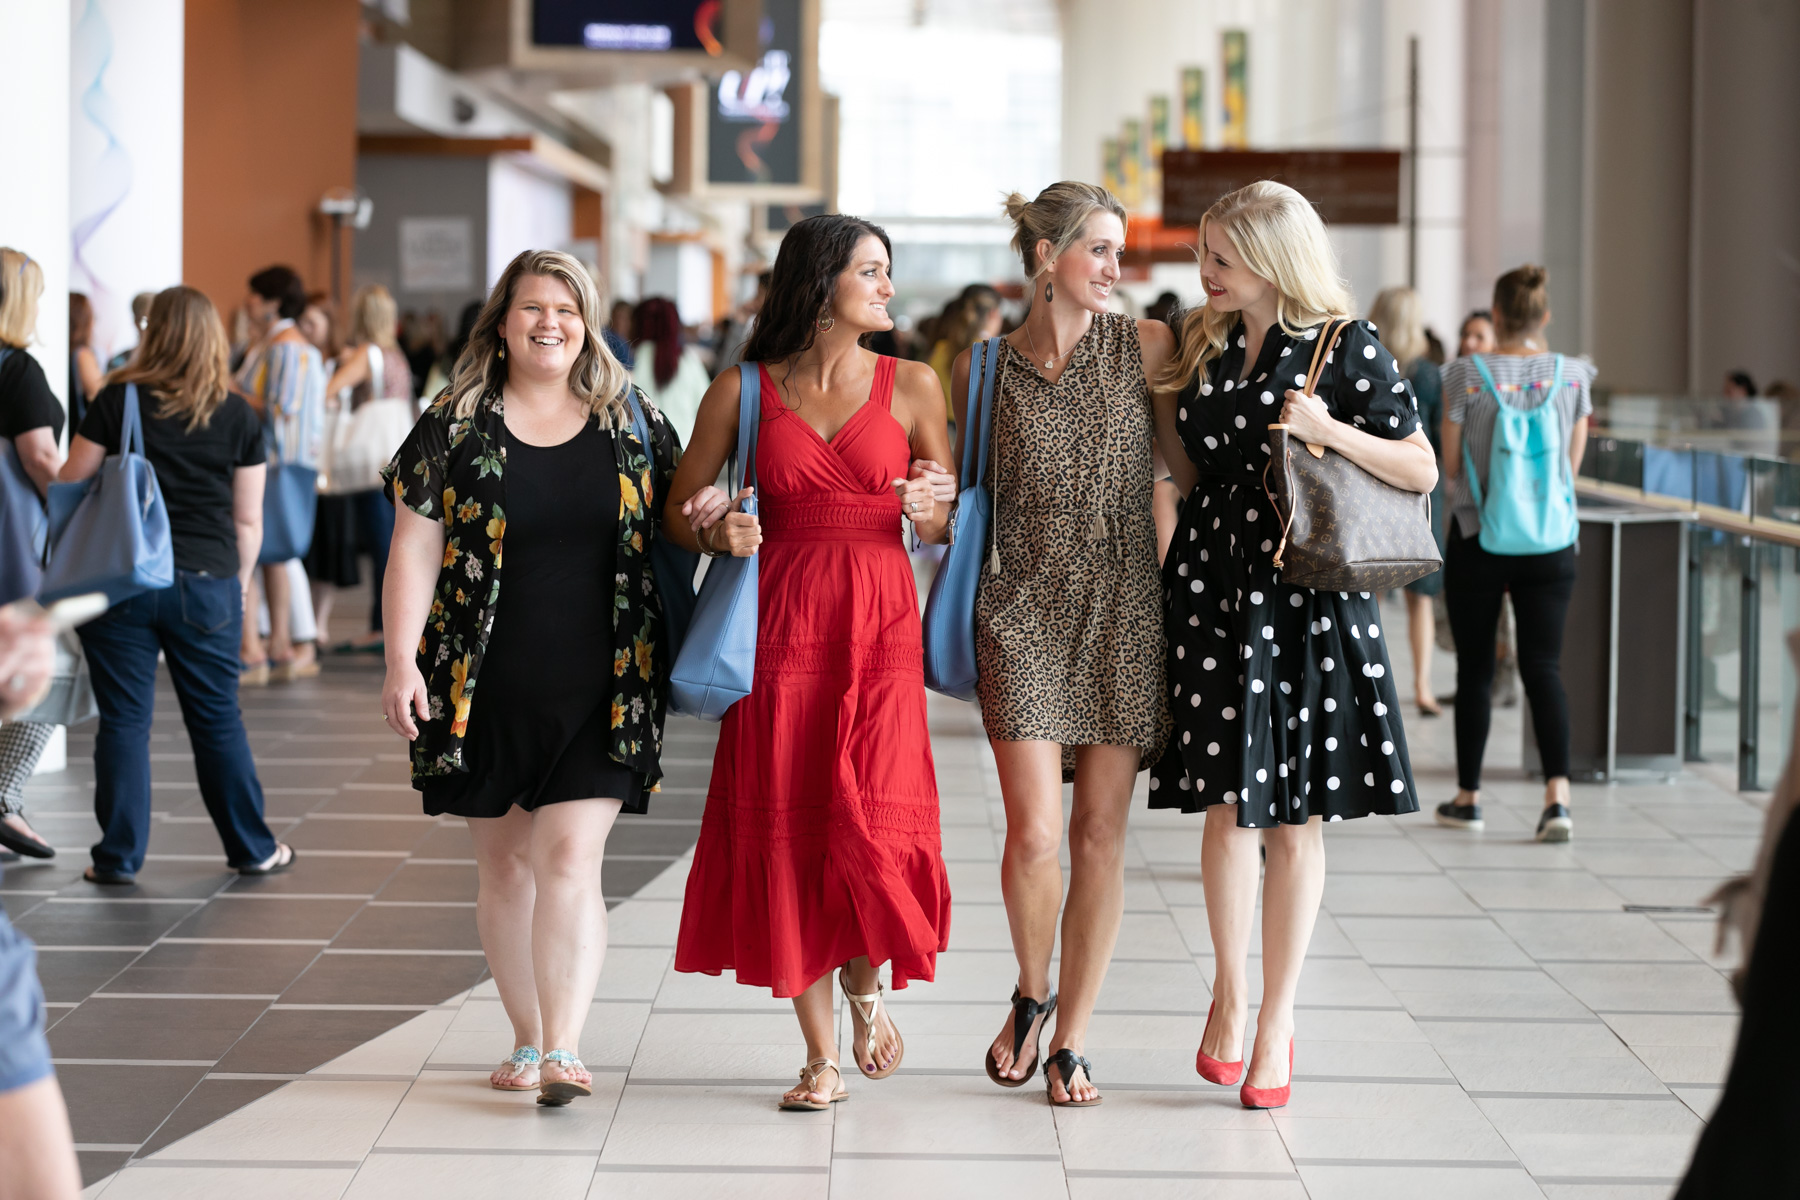 Four women walk towards Margo Moritz while engaged in conversation at a convention